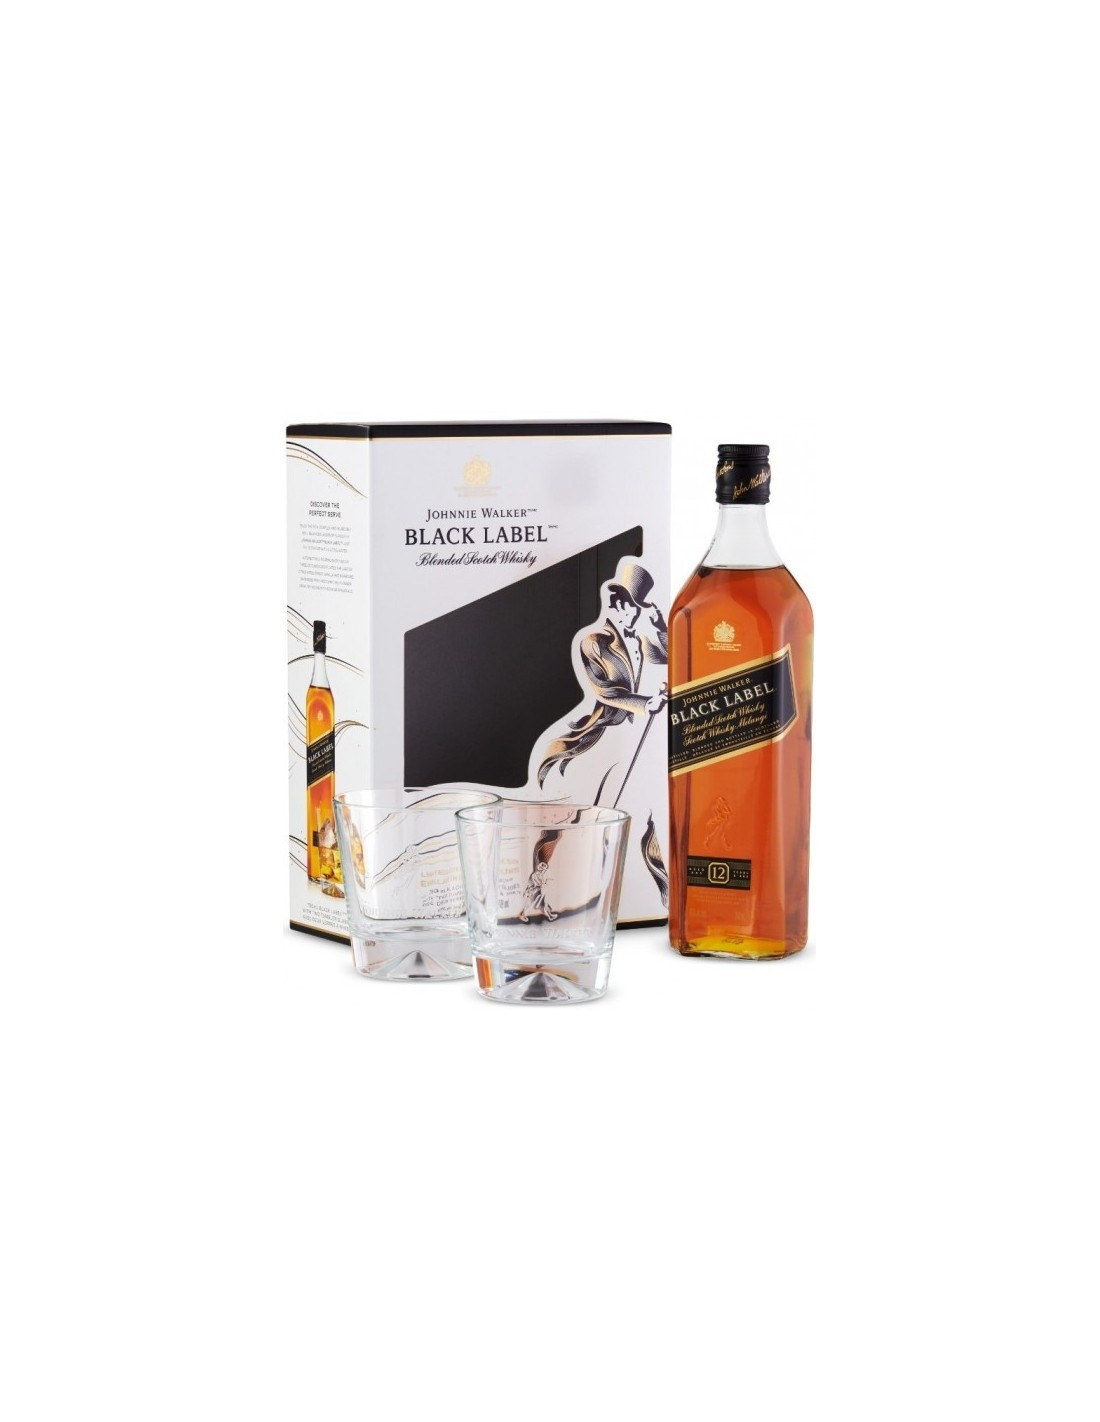 Blended Whisky Johnnie Walker Black Label + 2 Pahare, 12 ani, 40% alc., 0.7L, Scotia